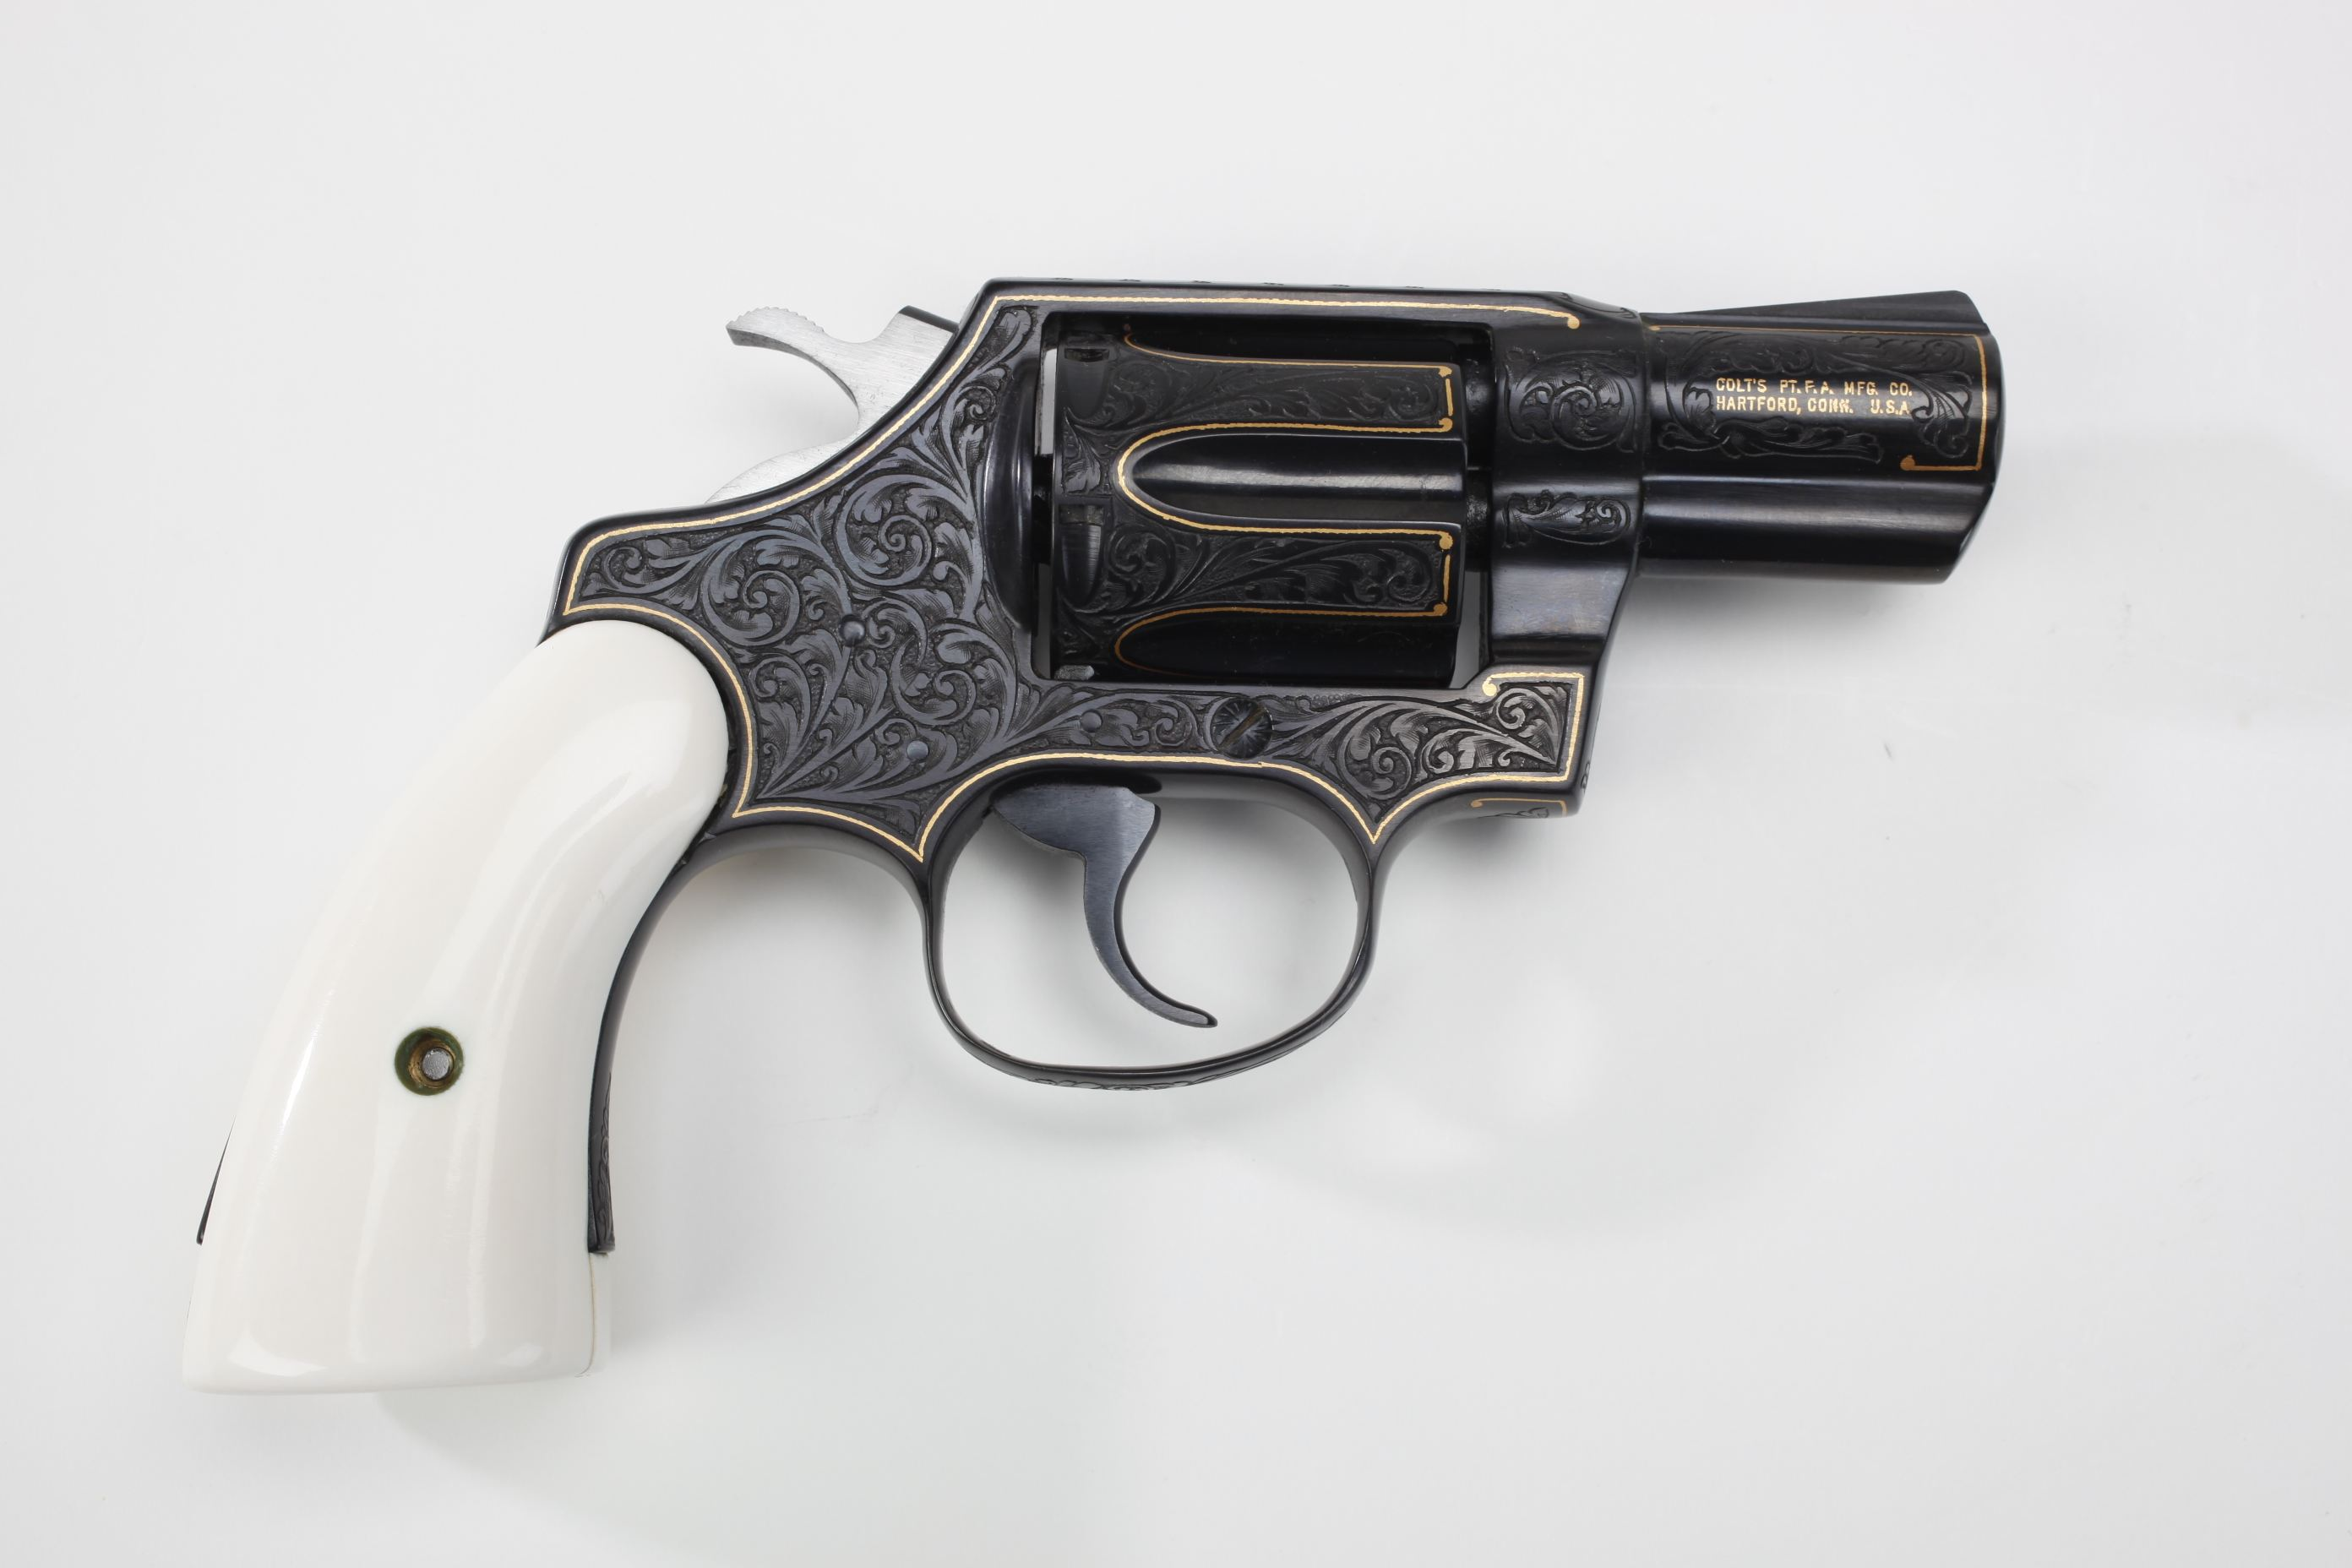 Colt Detective Special Double-Action Revolver w/ ivory grip panels